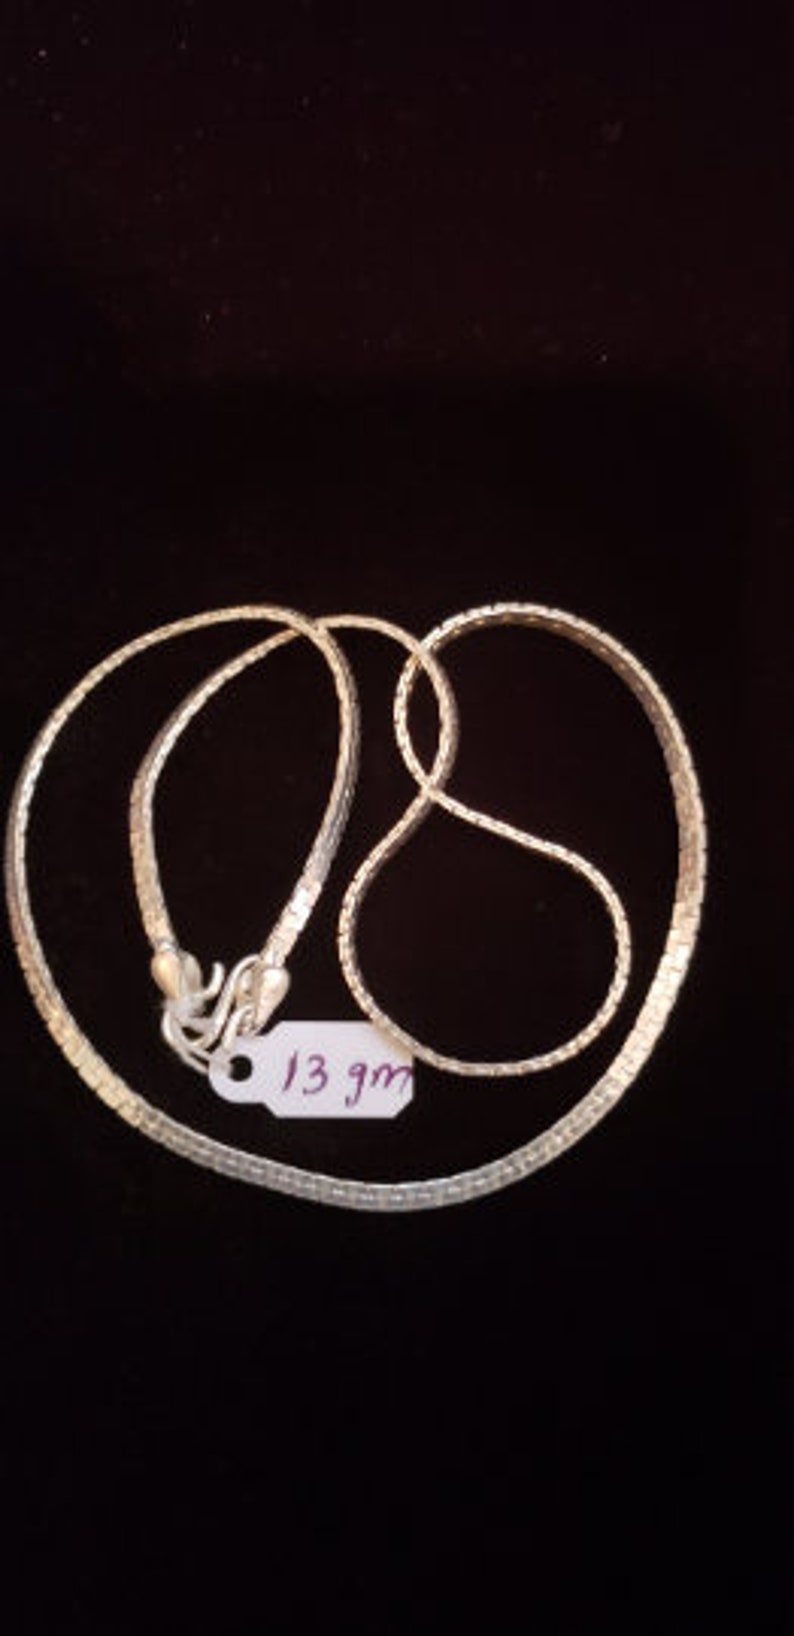 92.5 Sterling silver Chain from India Pure Silver Gift for Him Minimalist necklace Men/'s Silver Necklace